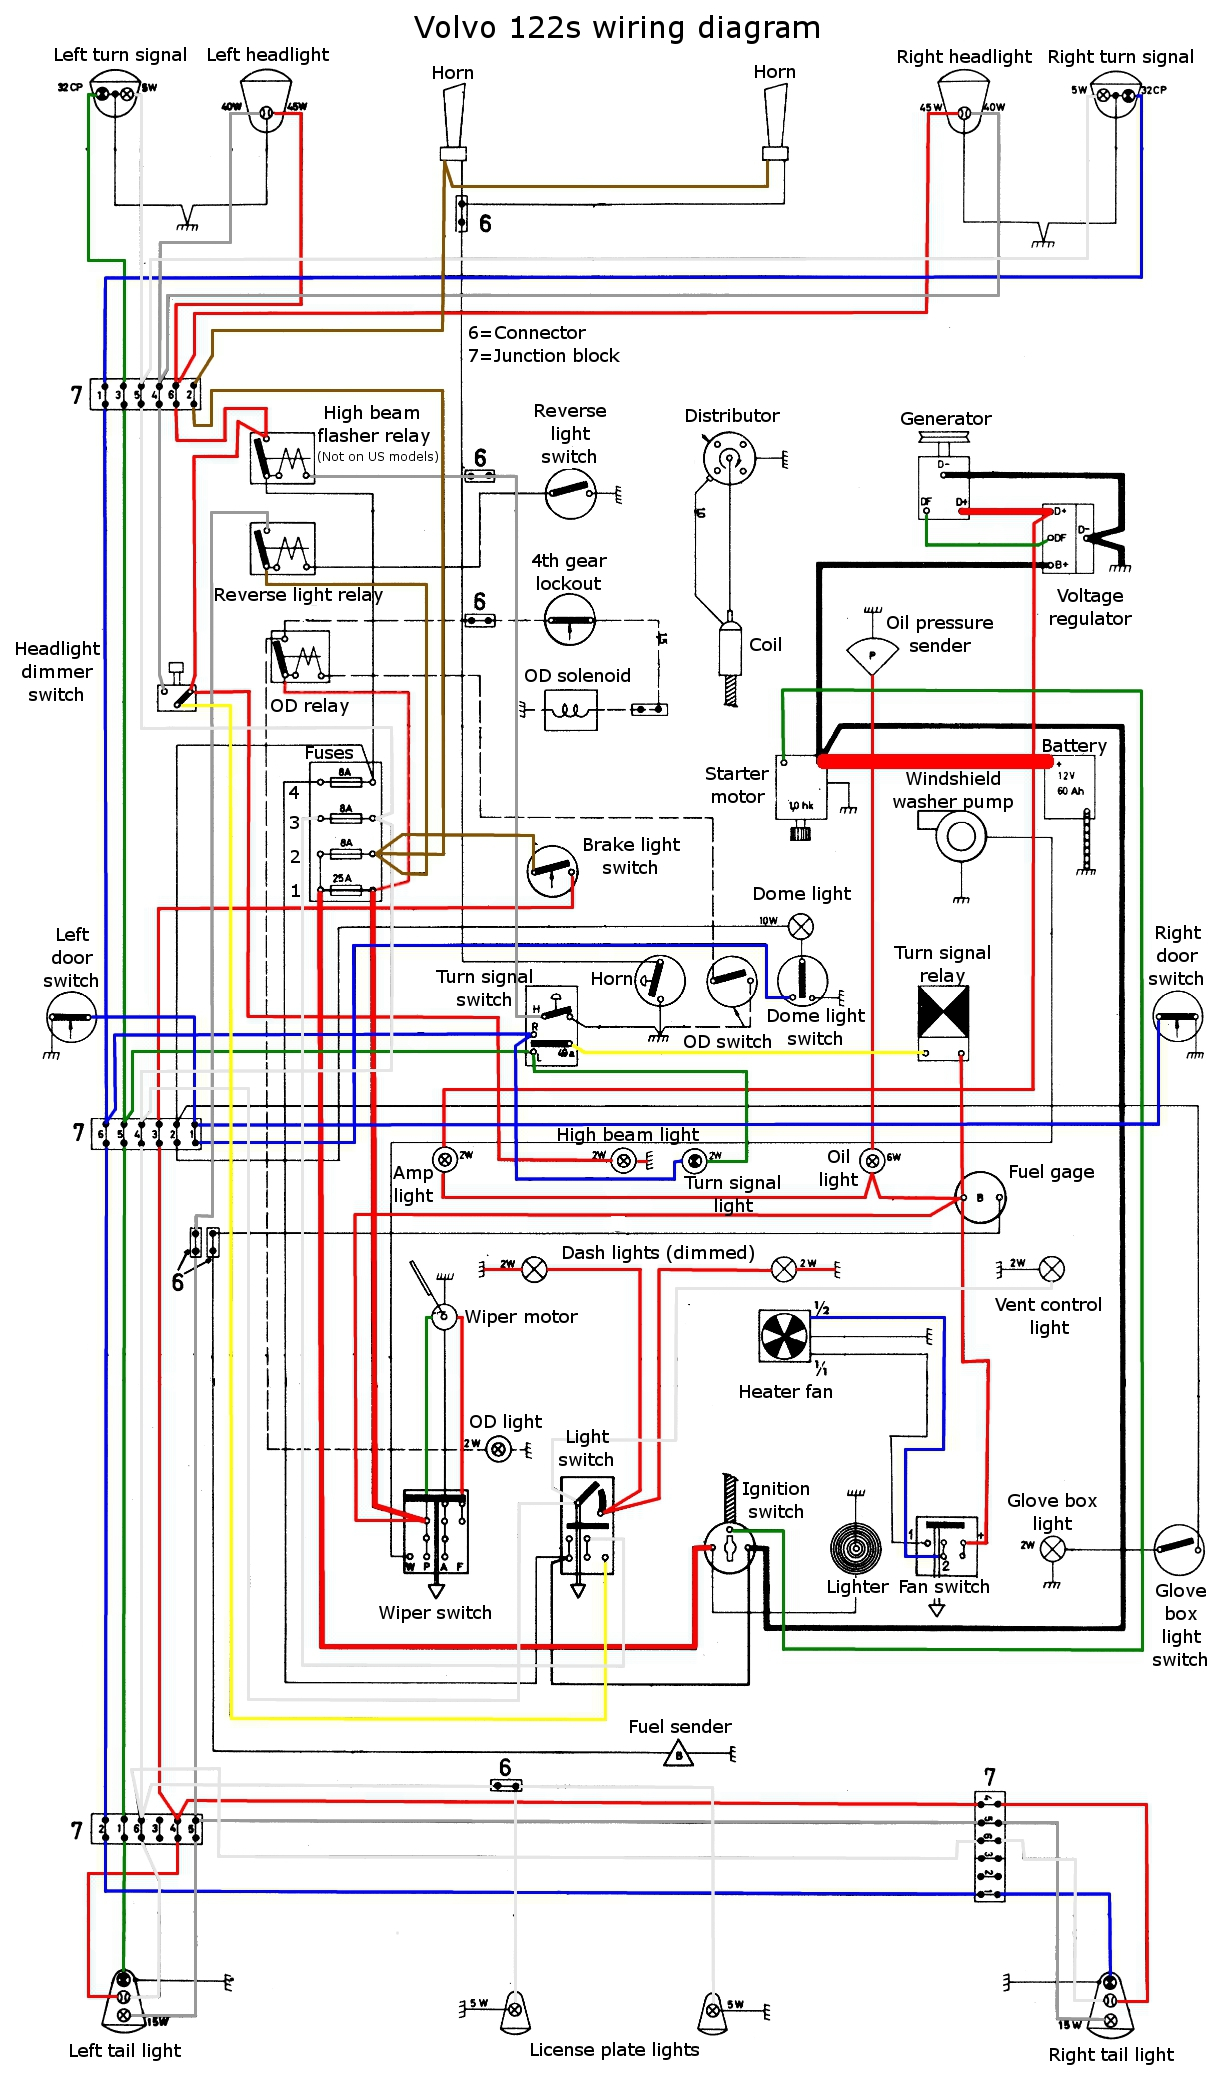 122 wiring diagram color wiring gremlins Vw R32 Wiring Diagram at love-stories.co